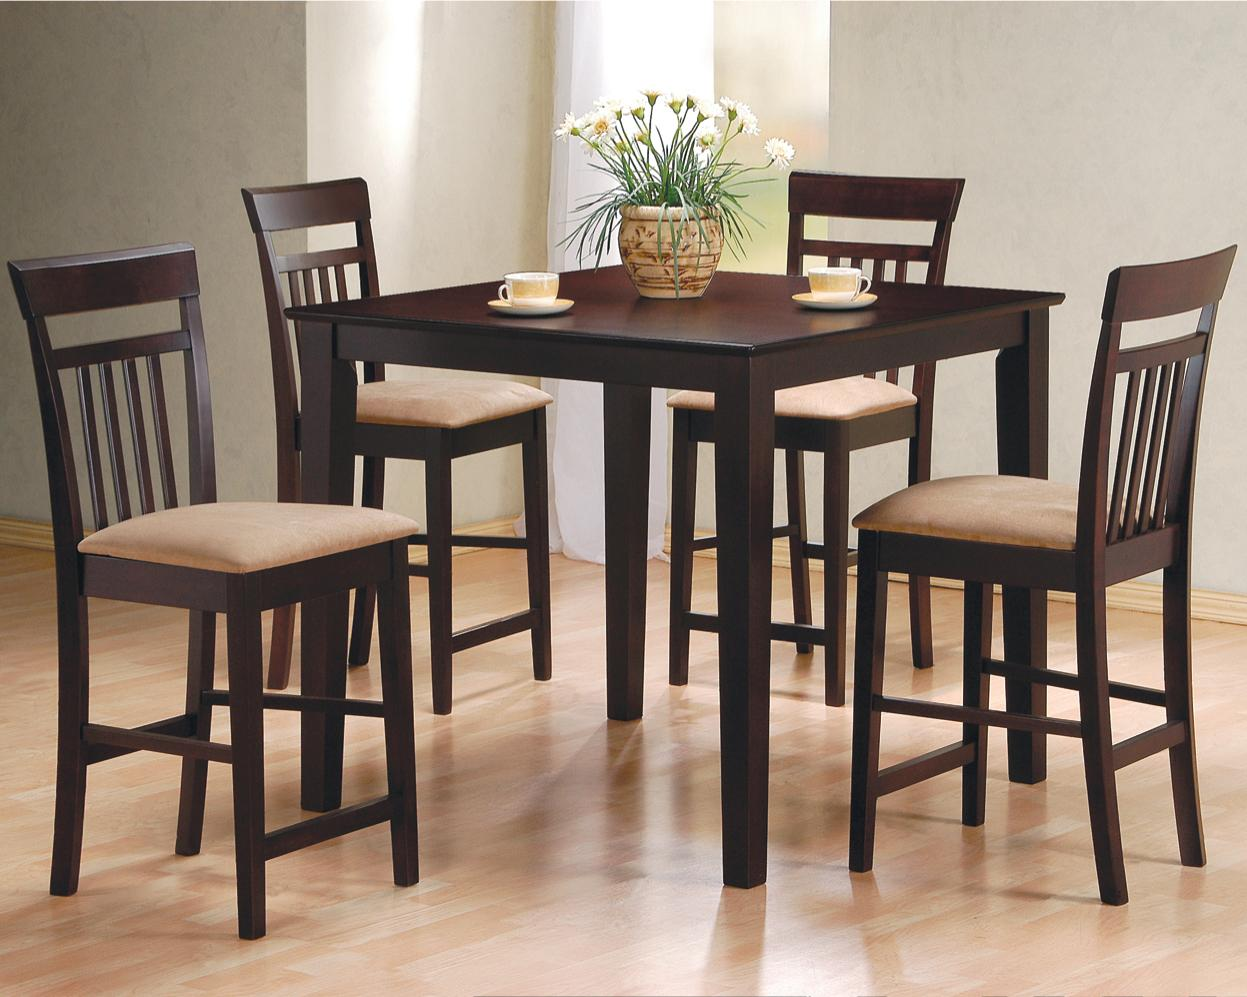 Coaster mix match 5 piece counter height dining set item number 150041